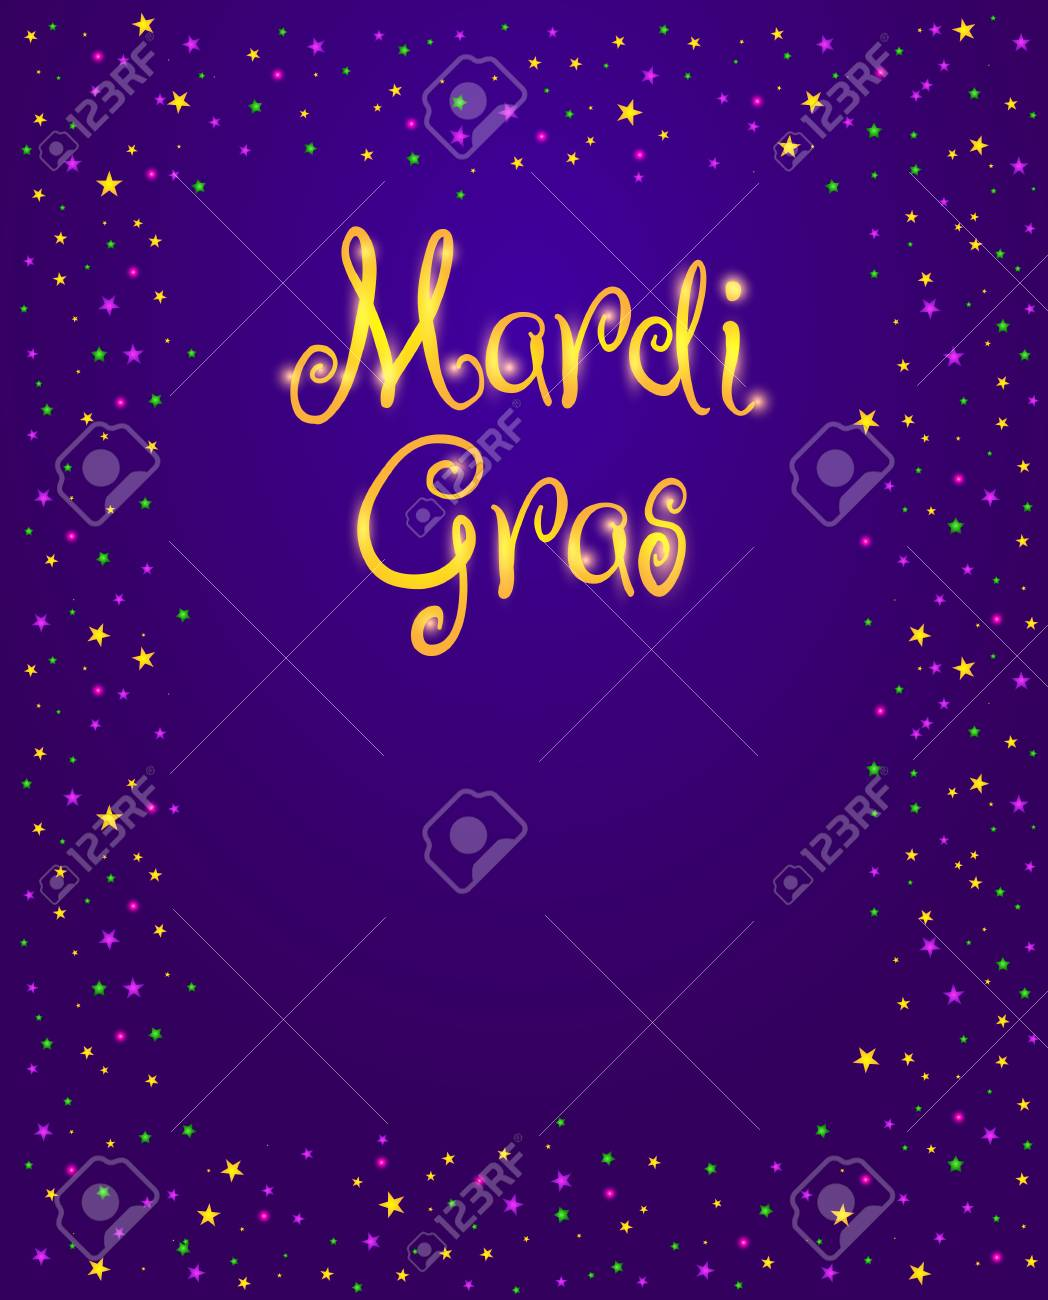 Mardi Gras vector design element, Fat Tusday poster or party invitation template. Frame of shining stars and beads on purple background - 69933601